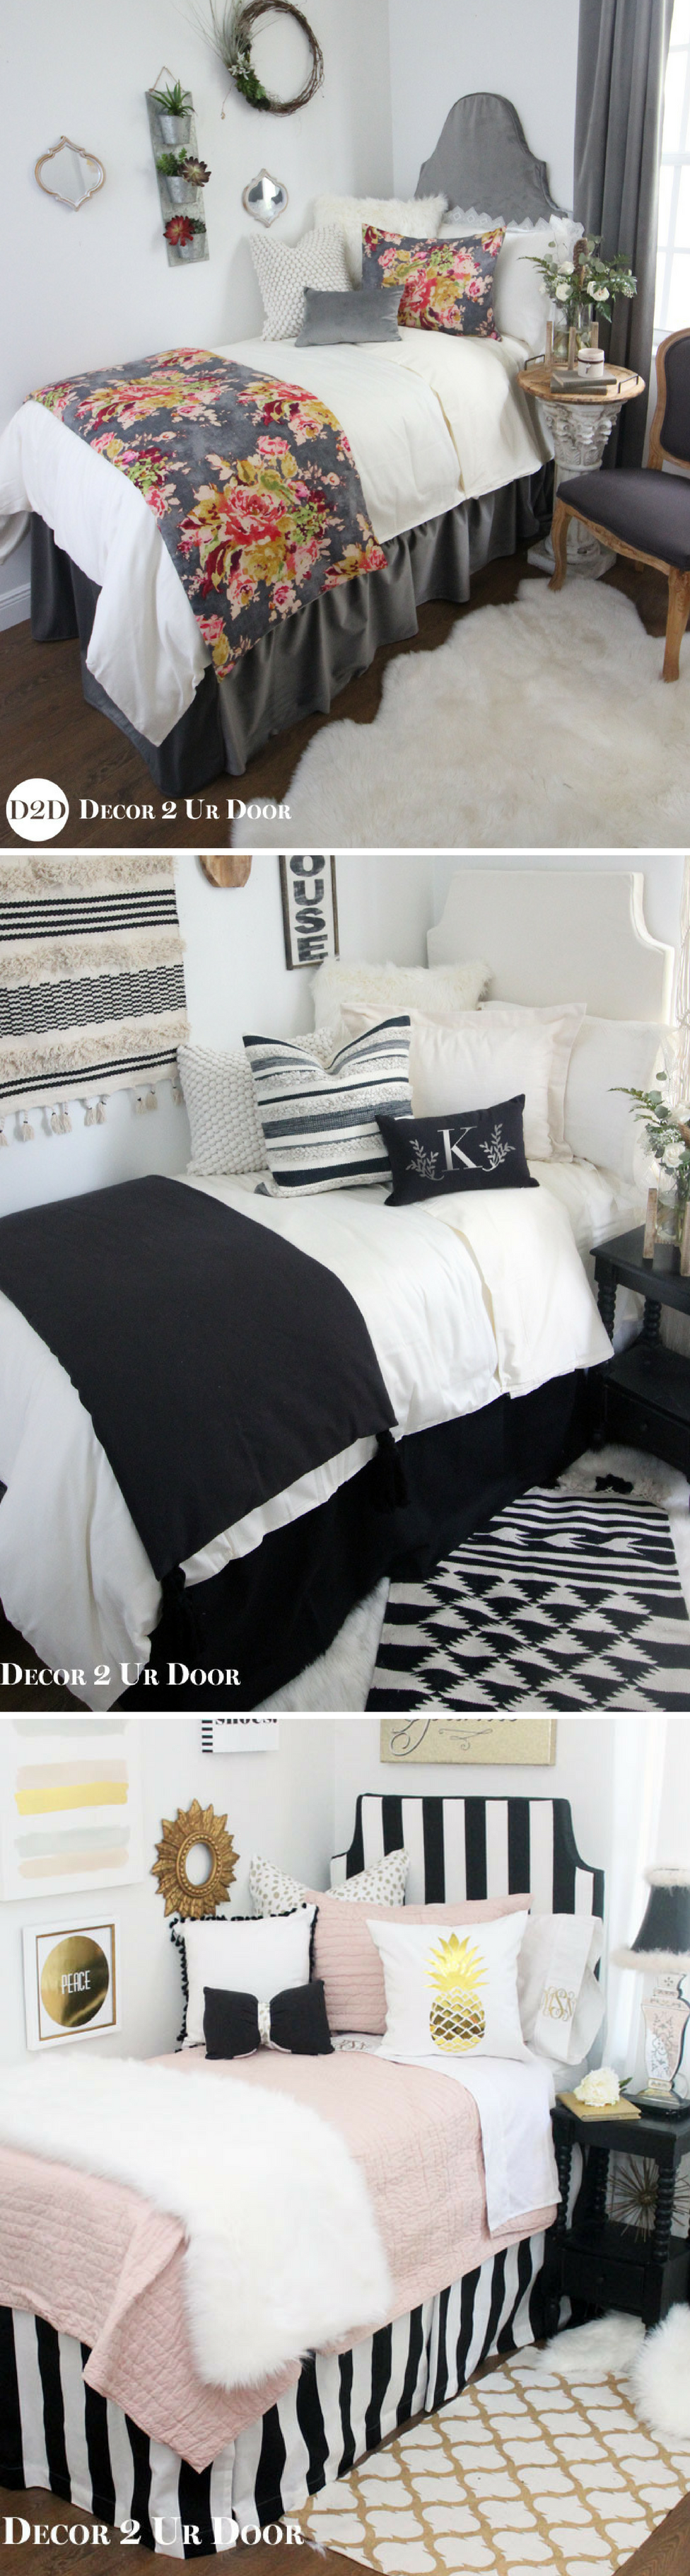 New Dorm Room Bedding From Featuring Unique And Stylish Designs